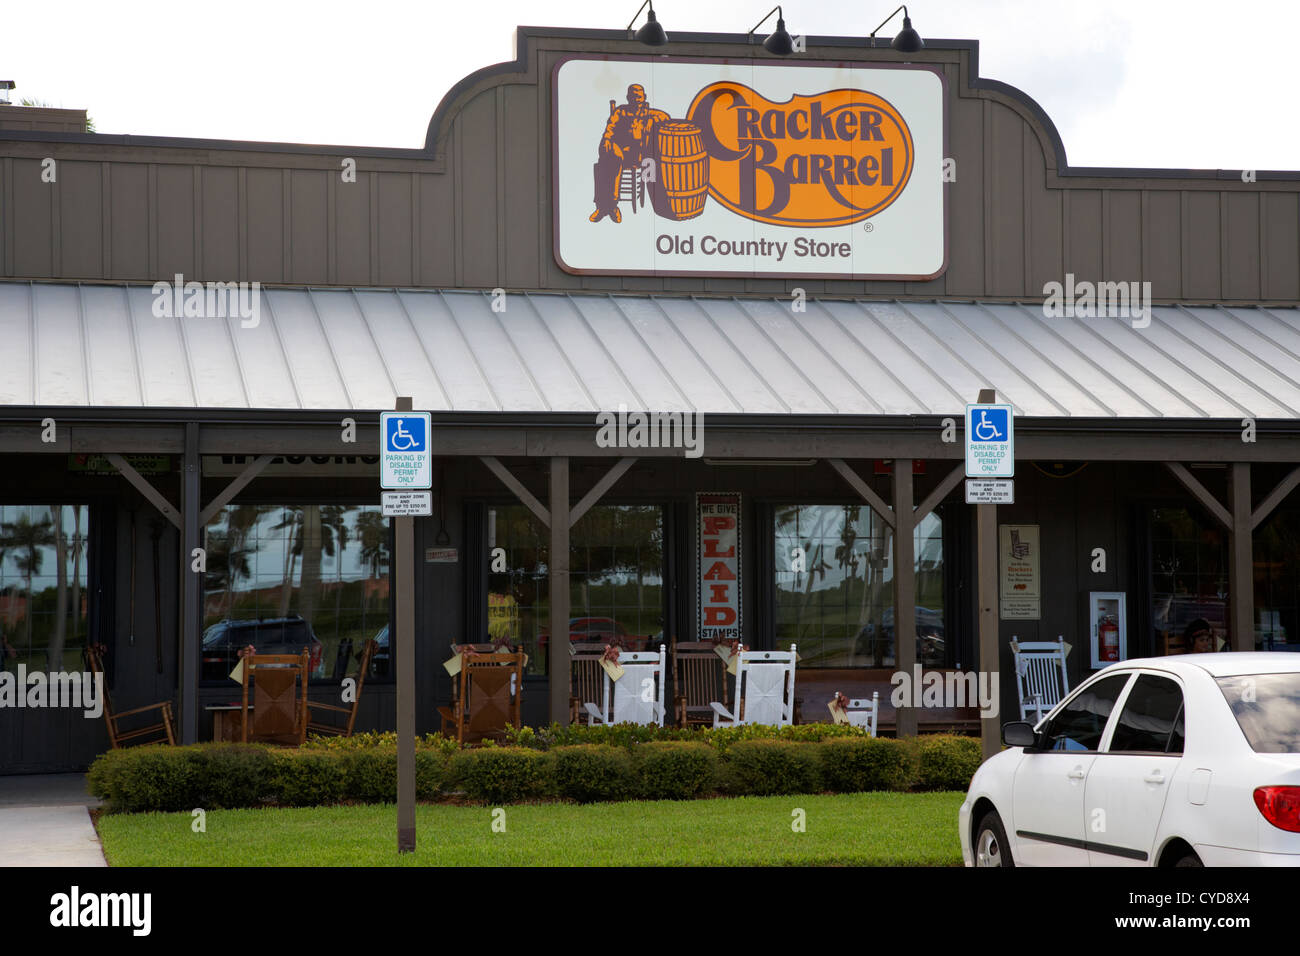 Cracker Barrel old country store restaurant homestead florida city usa Banque D'Images